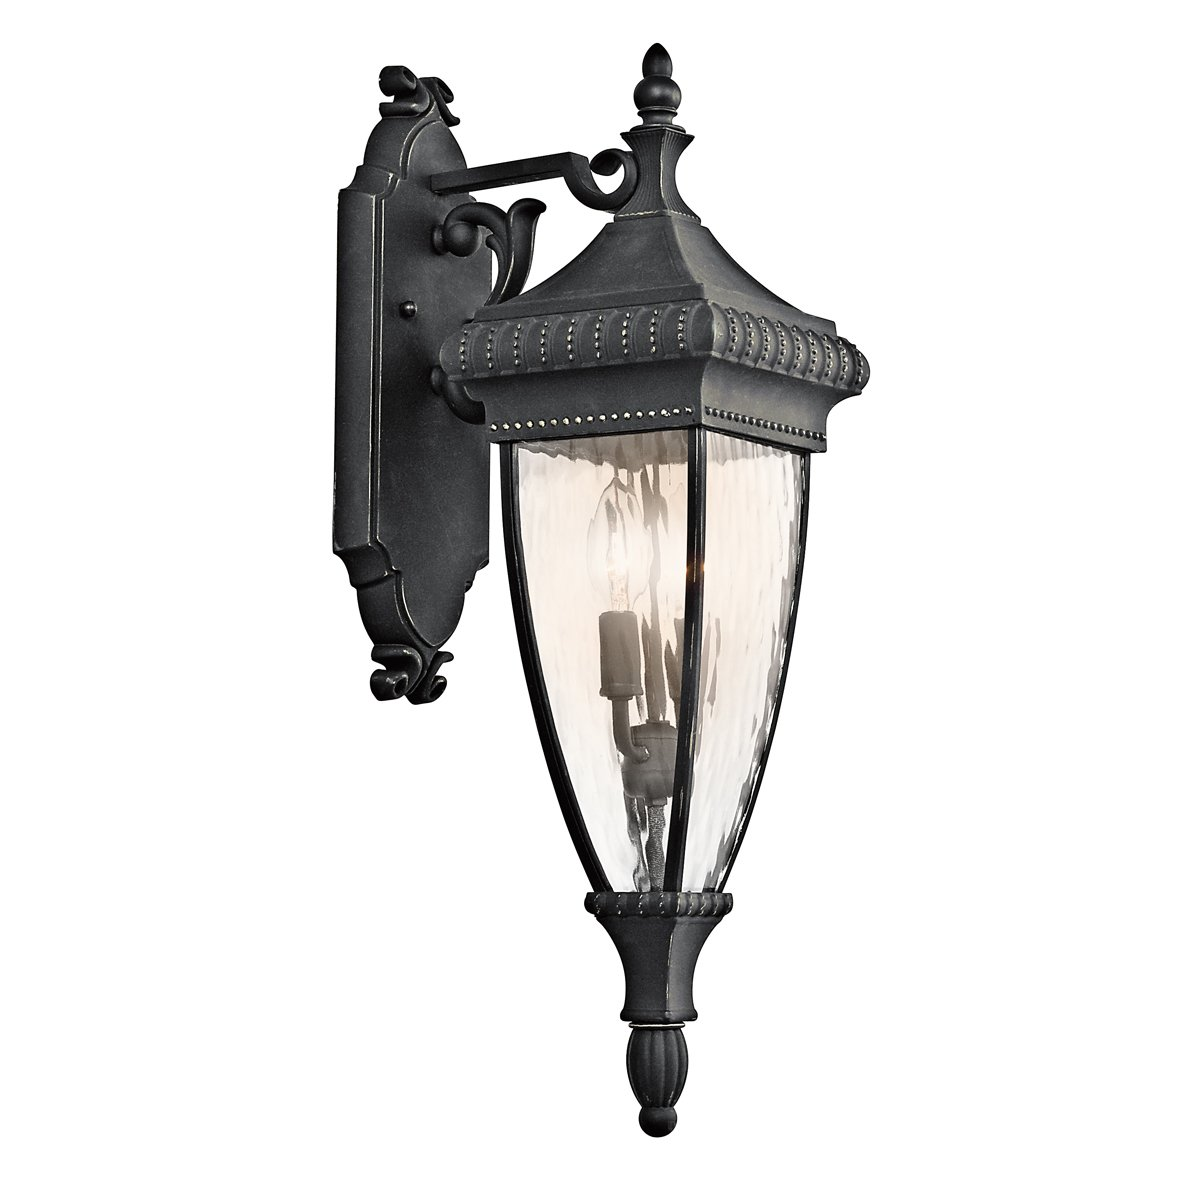 Kichler 49131bkg two light outdoor wall mount wall porch lights kichler 49131bkg two light outdoor wall mount wall porch lights amazon workwithnaturefo